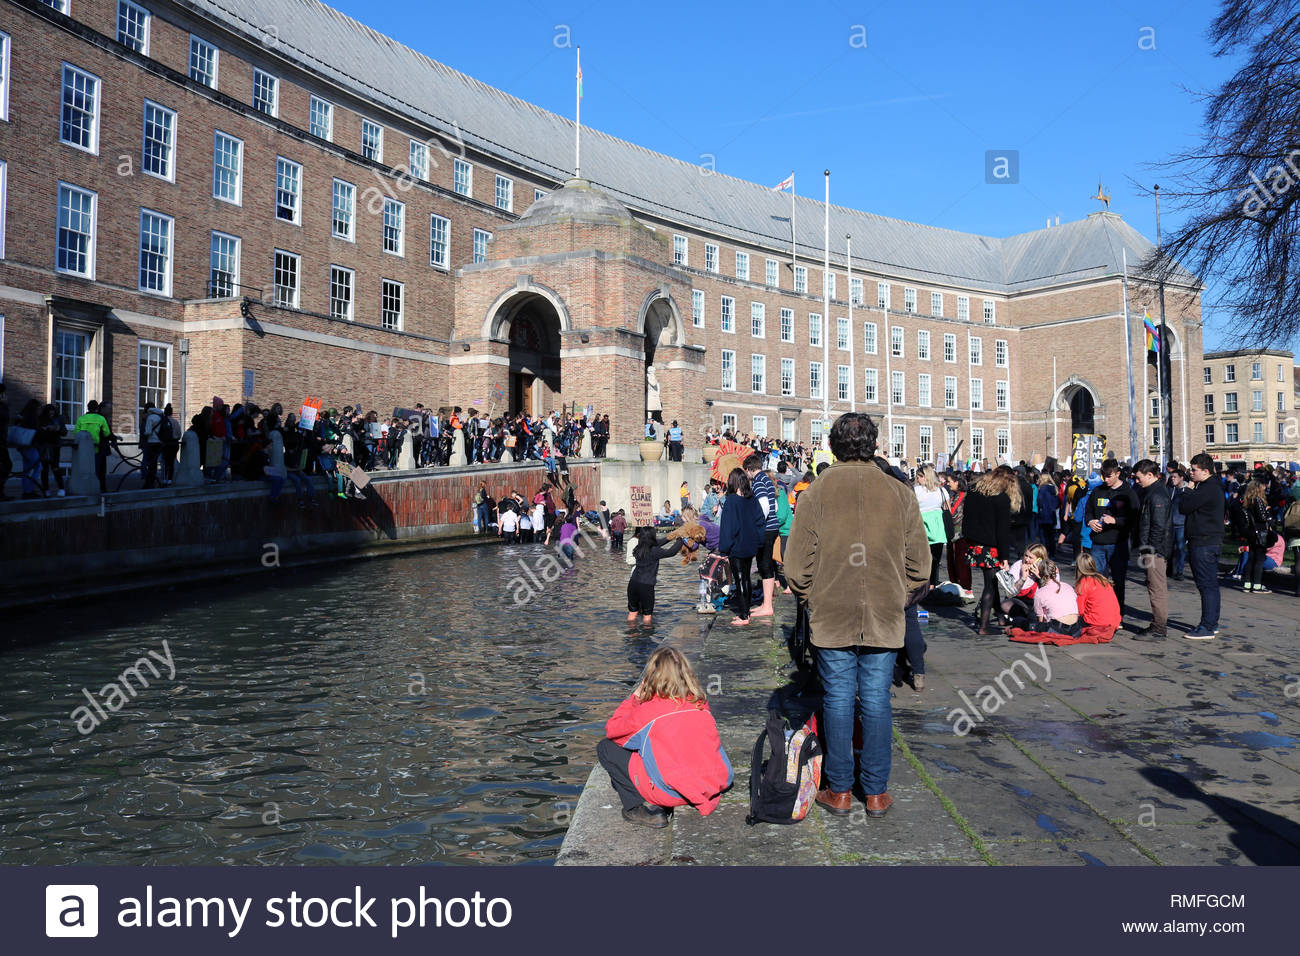 Bristol City Centre,UK. 15th February 2019. Students go on strike and protest against climate change on a Friday afternoon as part of theYouth Strike 4 Climate protest movement. Credit: Joseph Landers/Alamy Live News - Stock Image